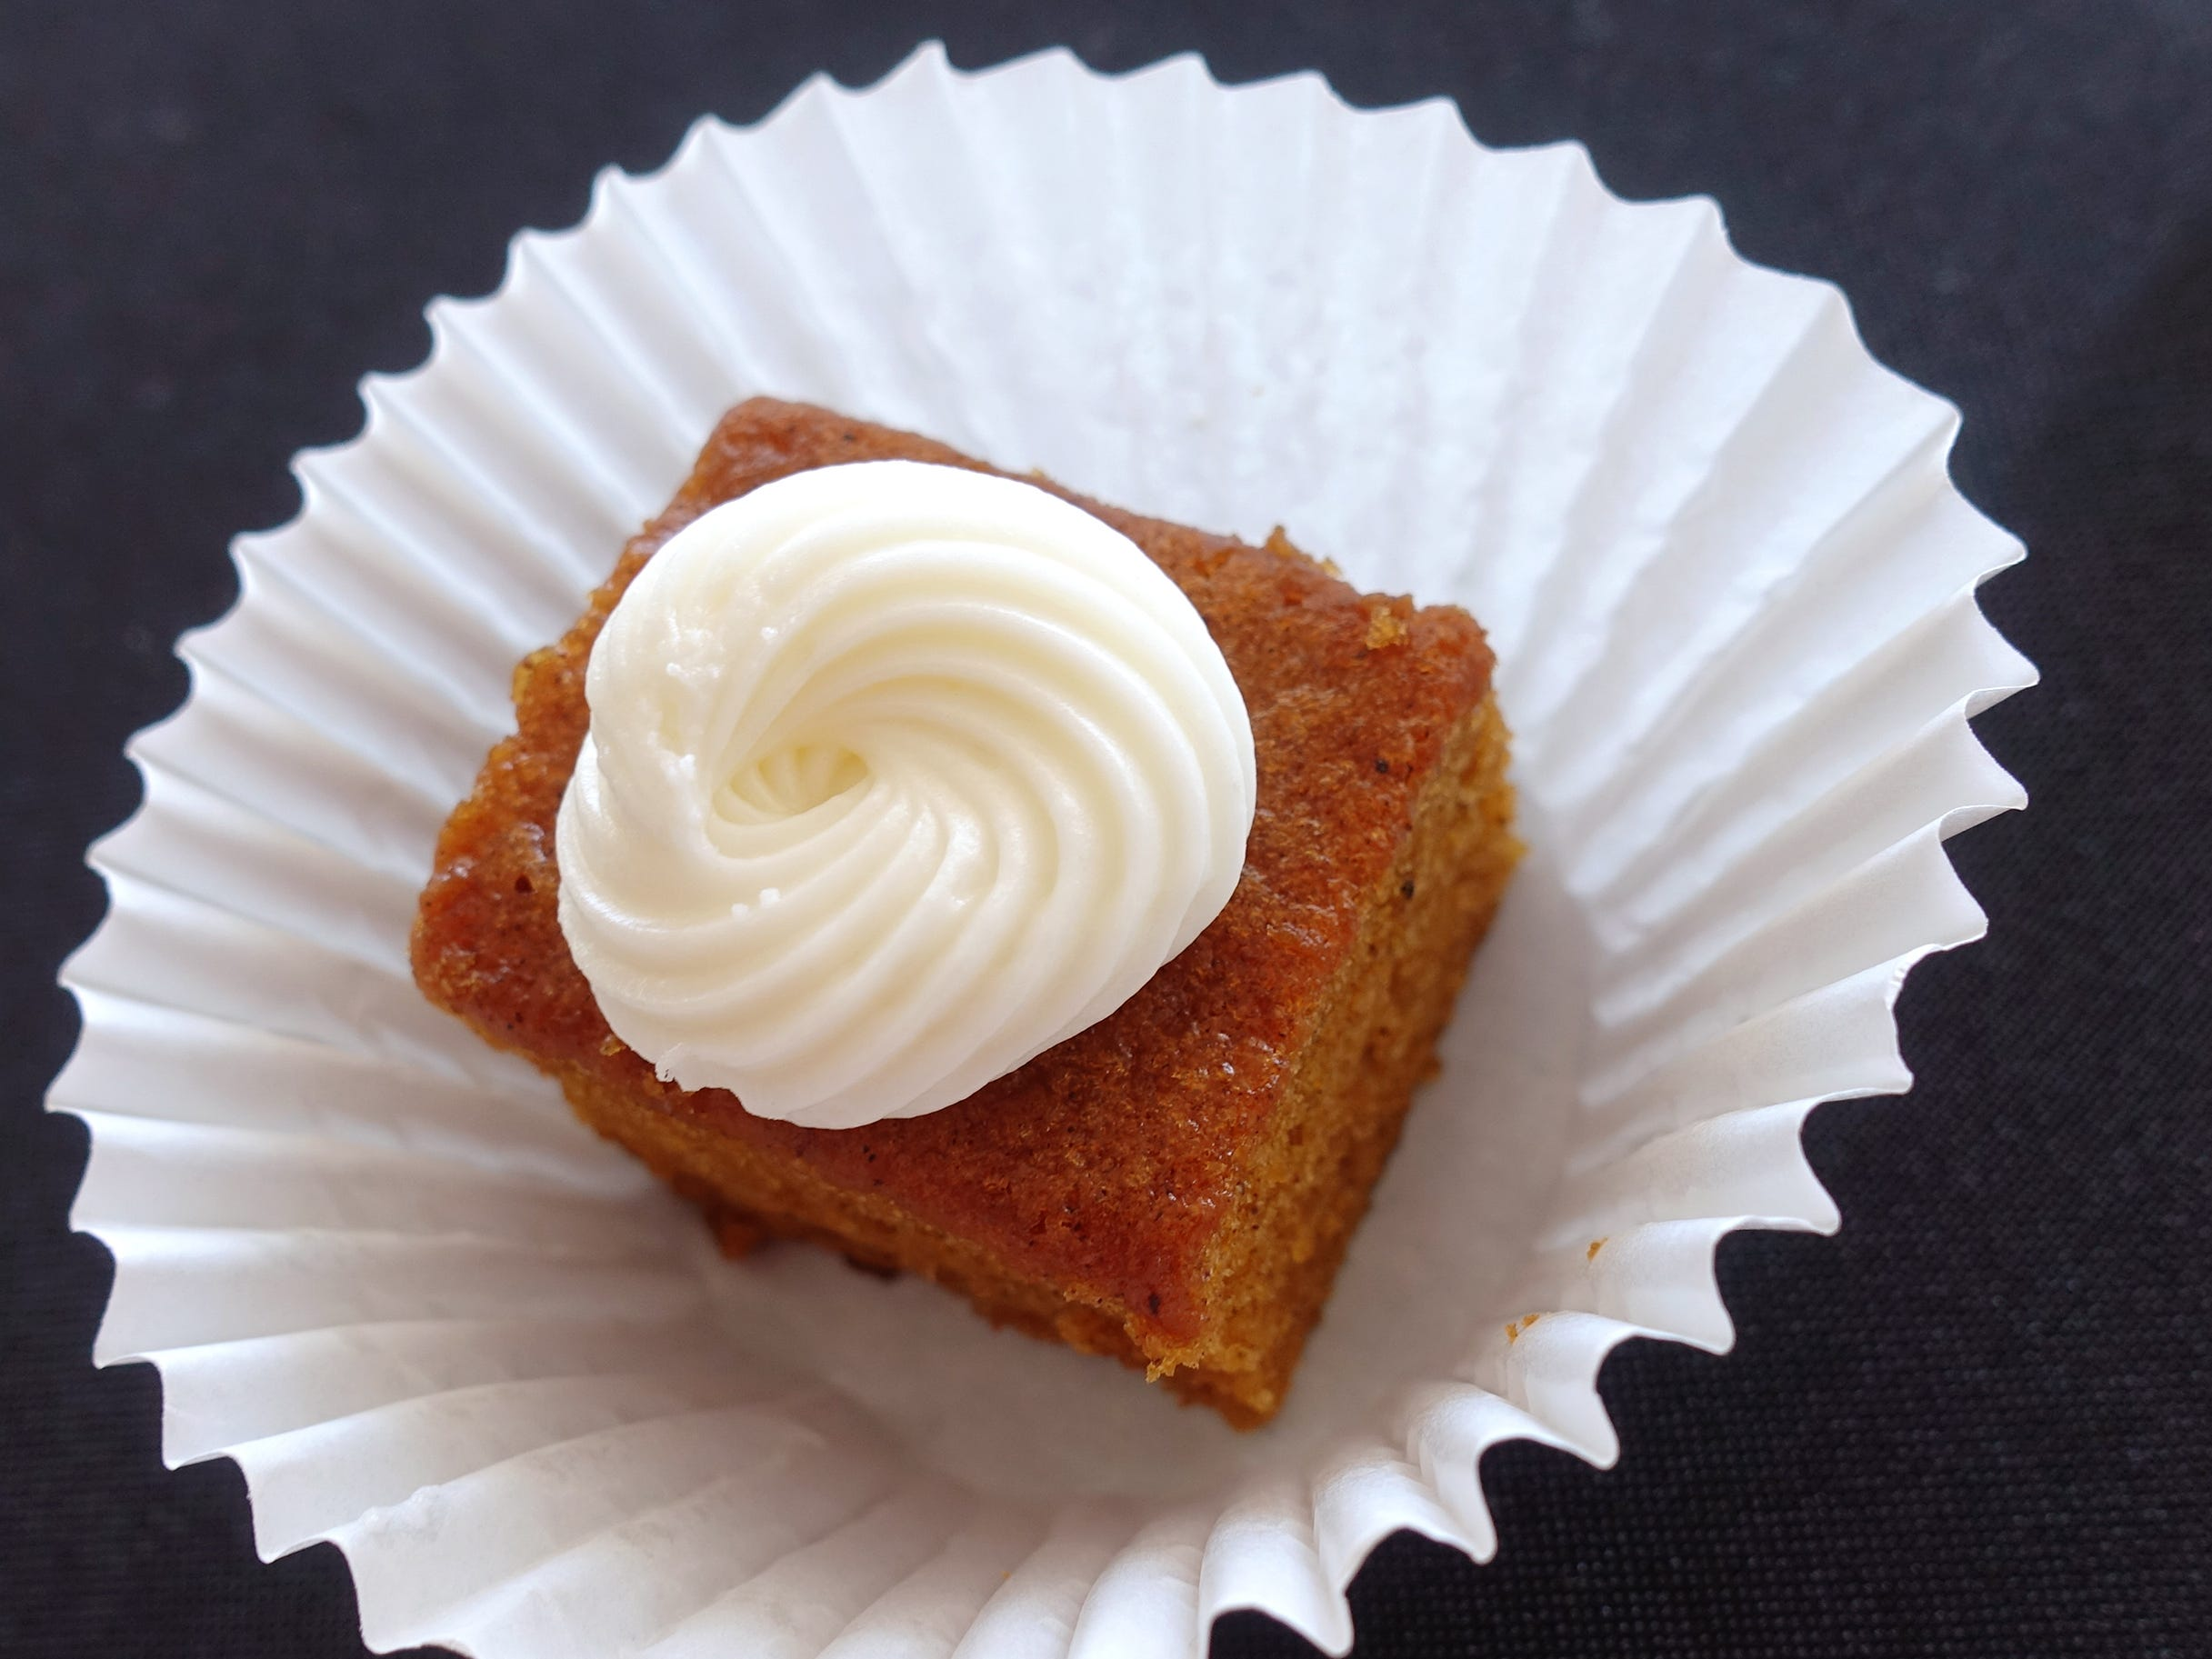 Pumpkin spice bundt cake with cream cheese frosting from Nothing Bundt Cakes at azcentral Wine & Food Experience 2018 at WestWorld of Scottsdale, Saturday, Nov. 3, 2018.